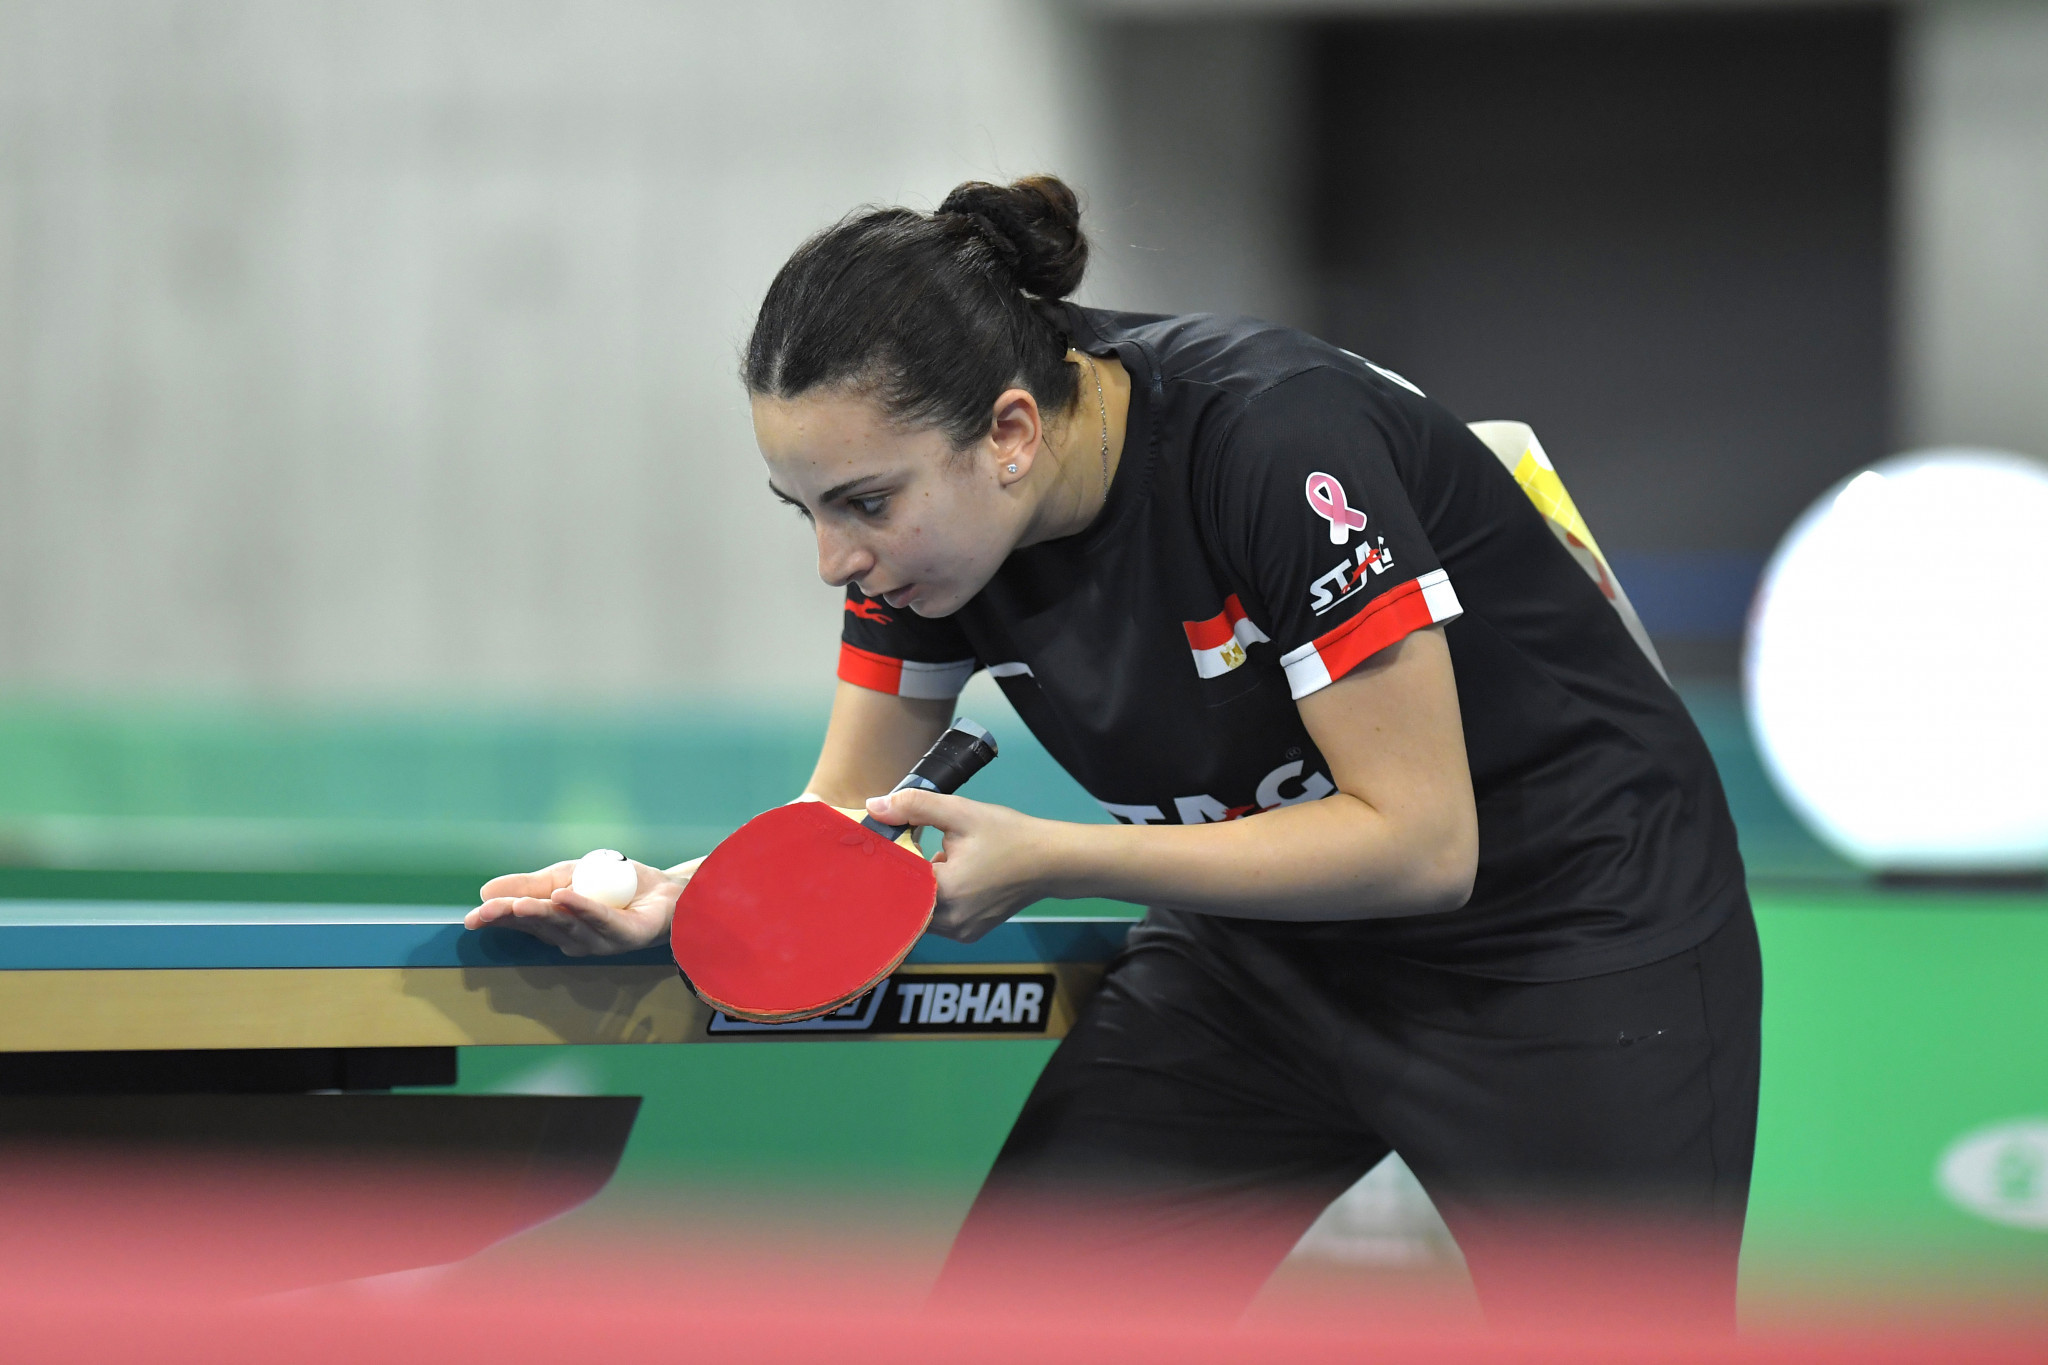 Egypt's Assar and Meshref do not drop a game in qualifying for Tokyo 2020 mixed doubles table tennis